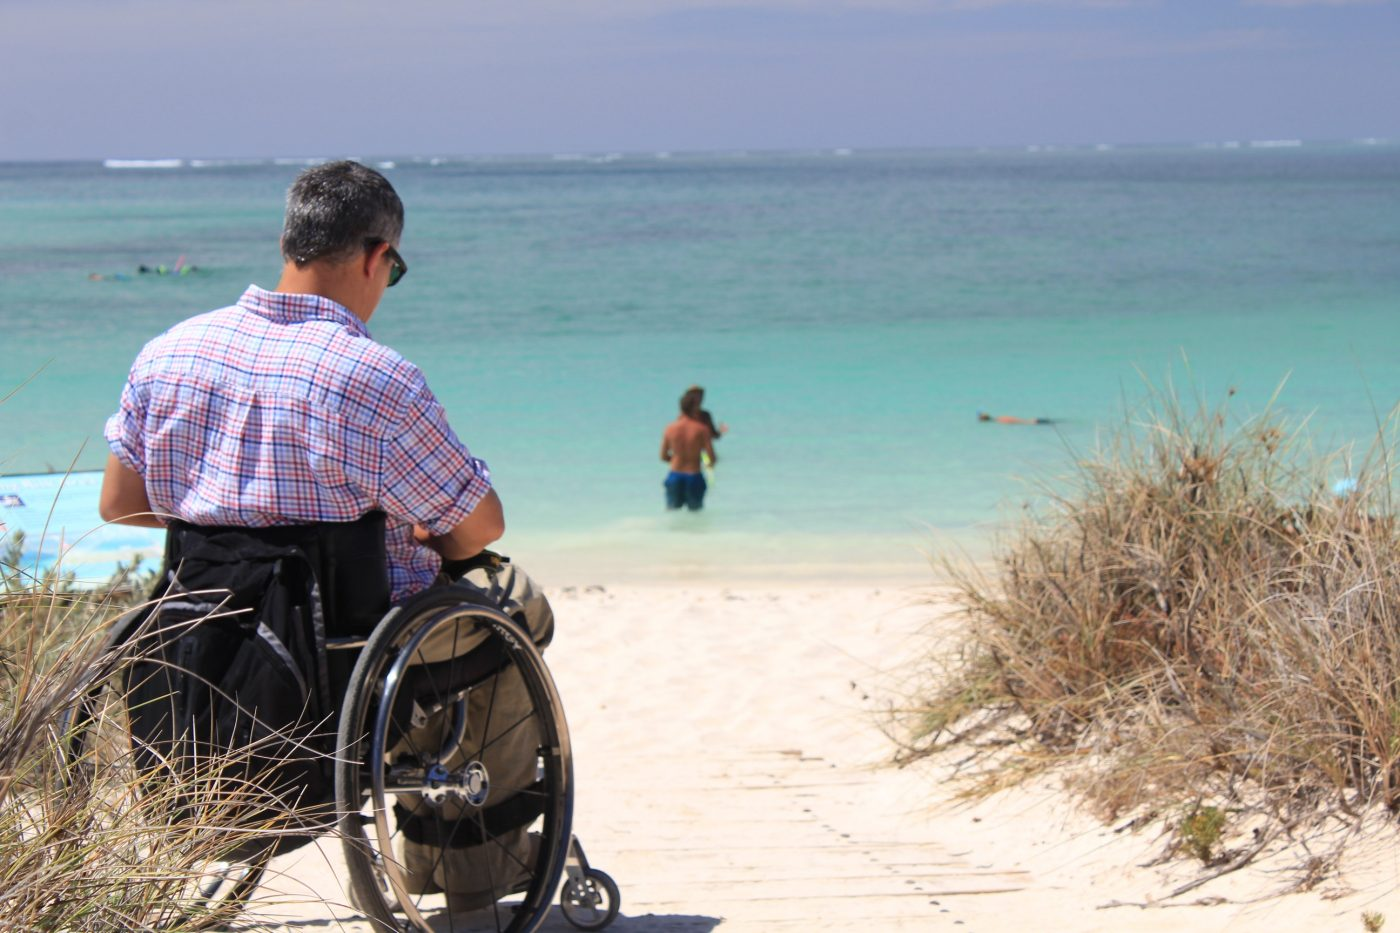 Creative Ways to Travel With a Disability